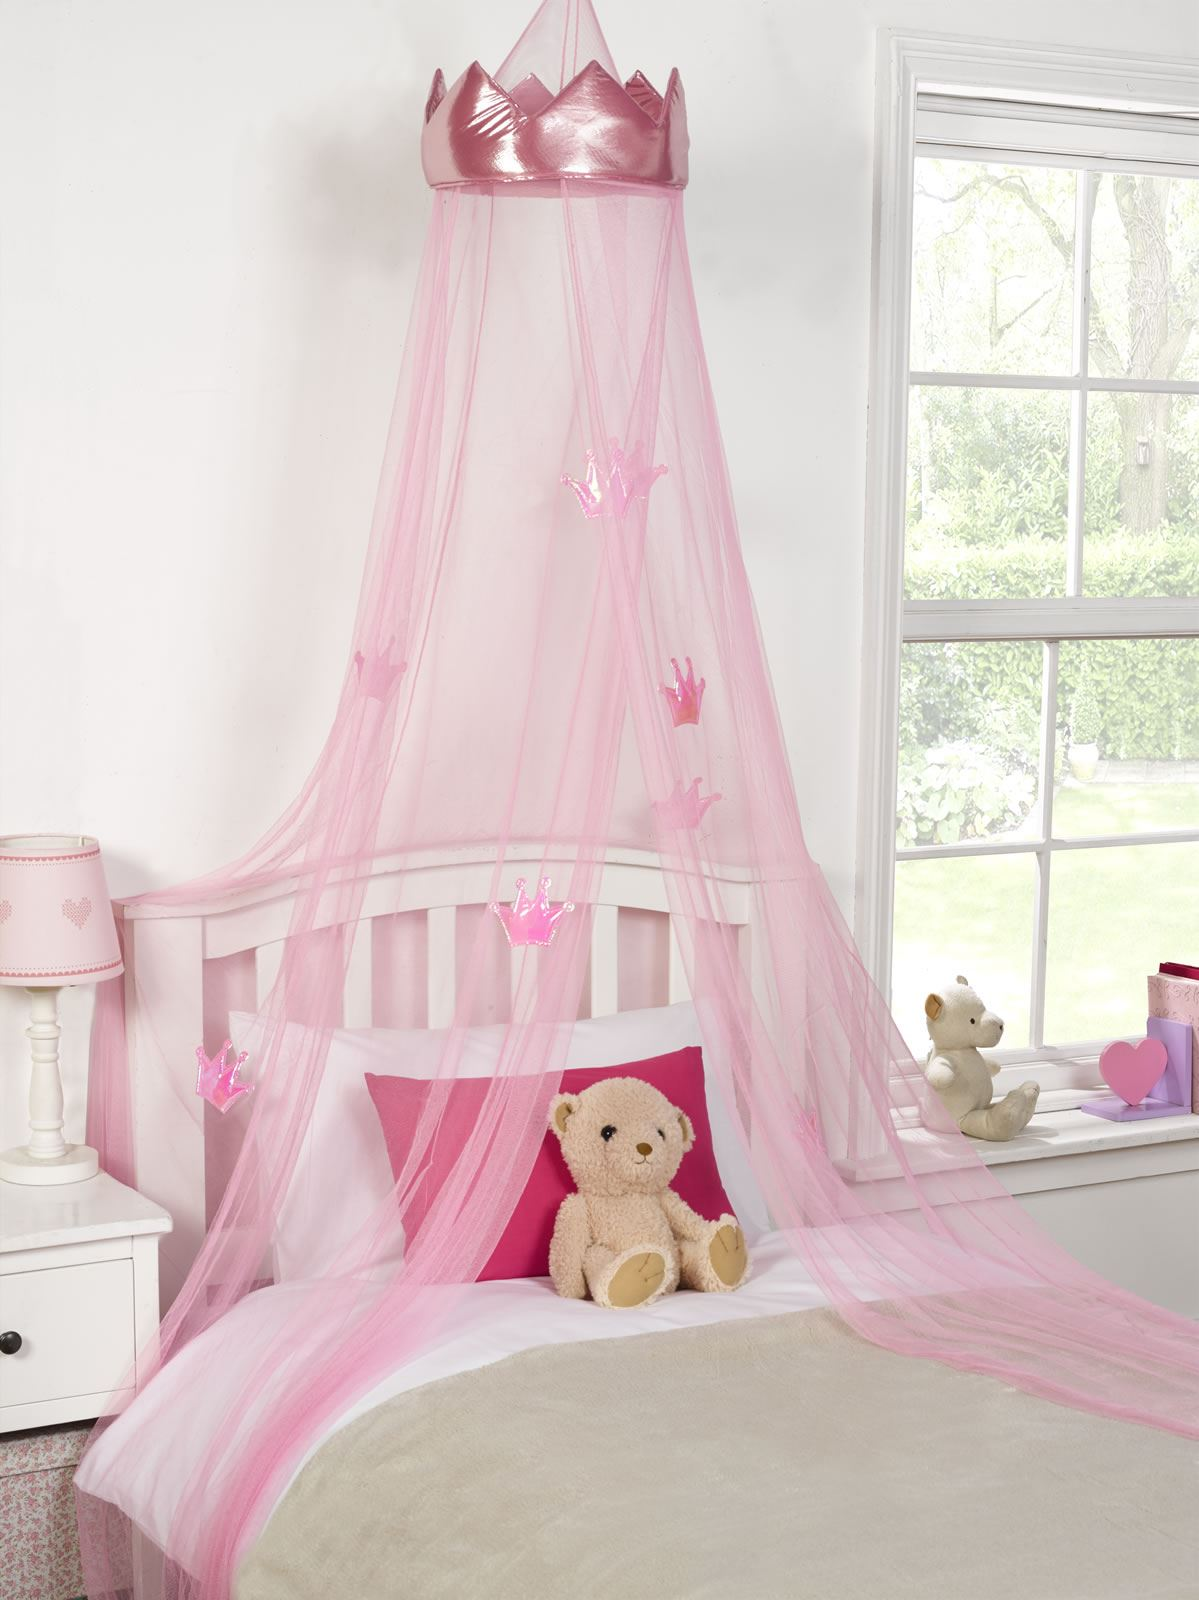 KIDS-CHILDRENS-GIRLS-PRINCESS-CROWN-BED-CANOPY-INSECT- & KIDS CHILDRENS GIRLS PRINCESS CROWN BED CANOPY INSECT MOSQUITO NET ...